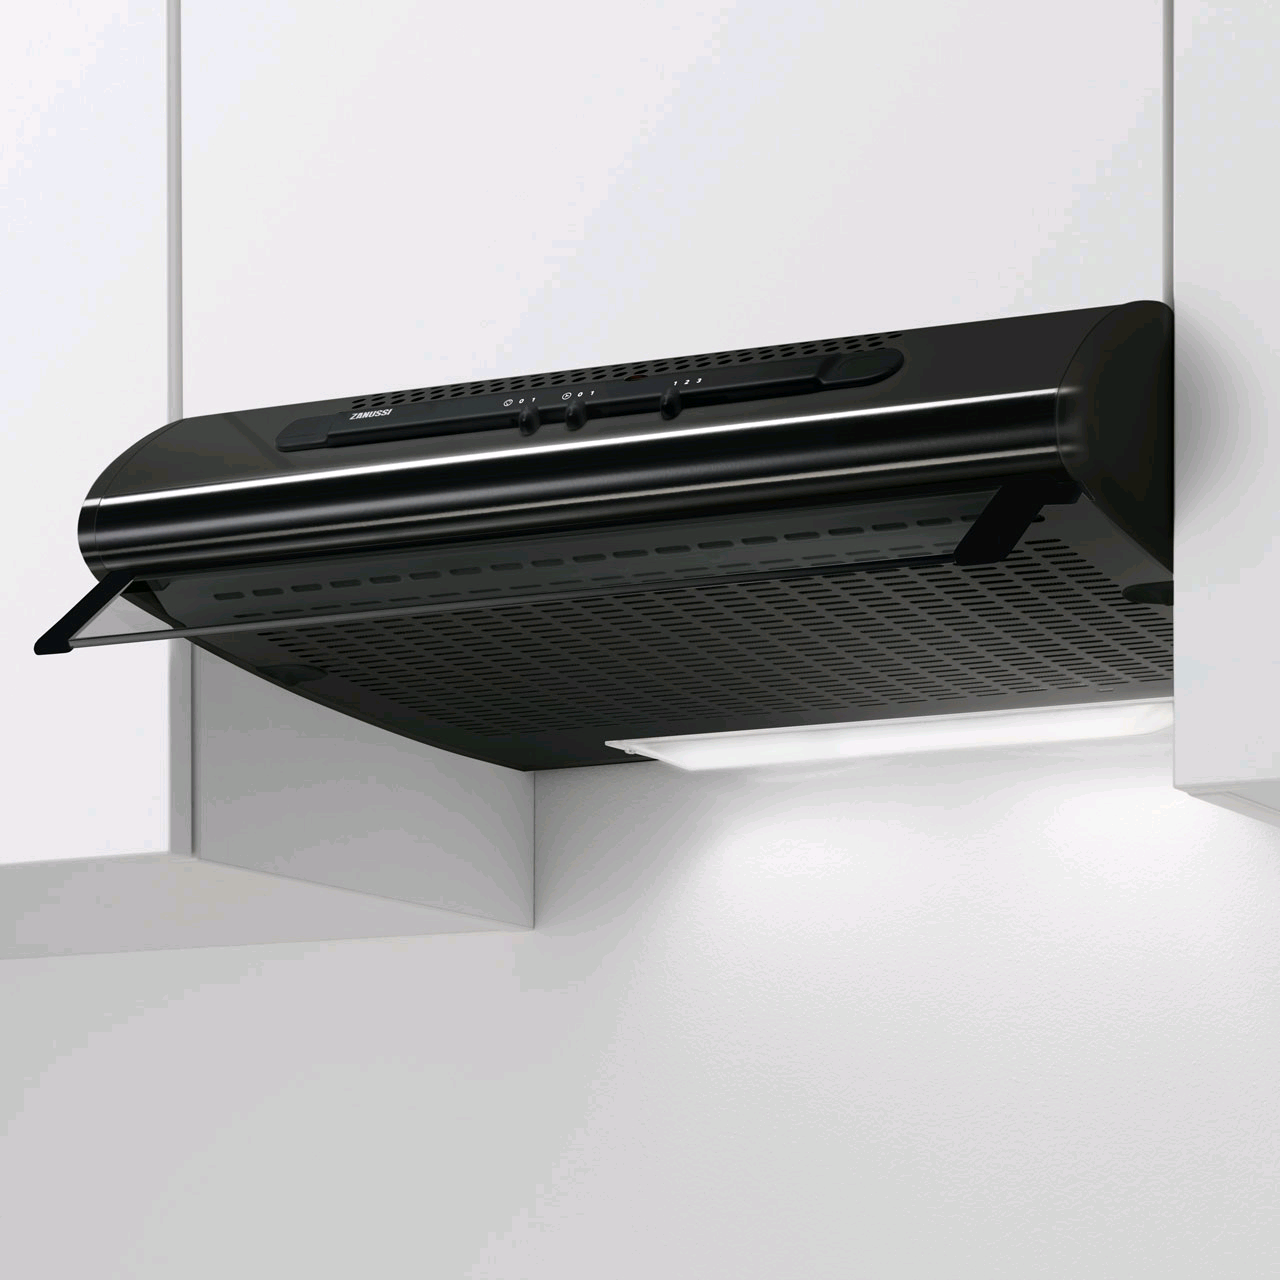 Zanussi Visor 60cm  Cooker Hood 3 Speed